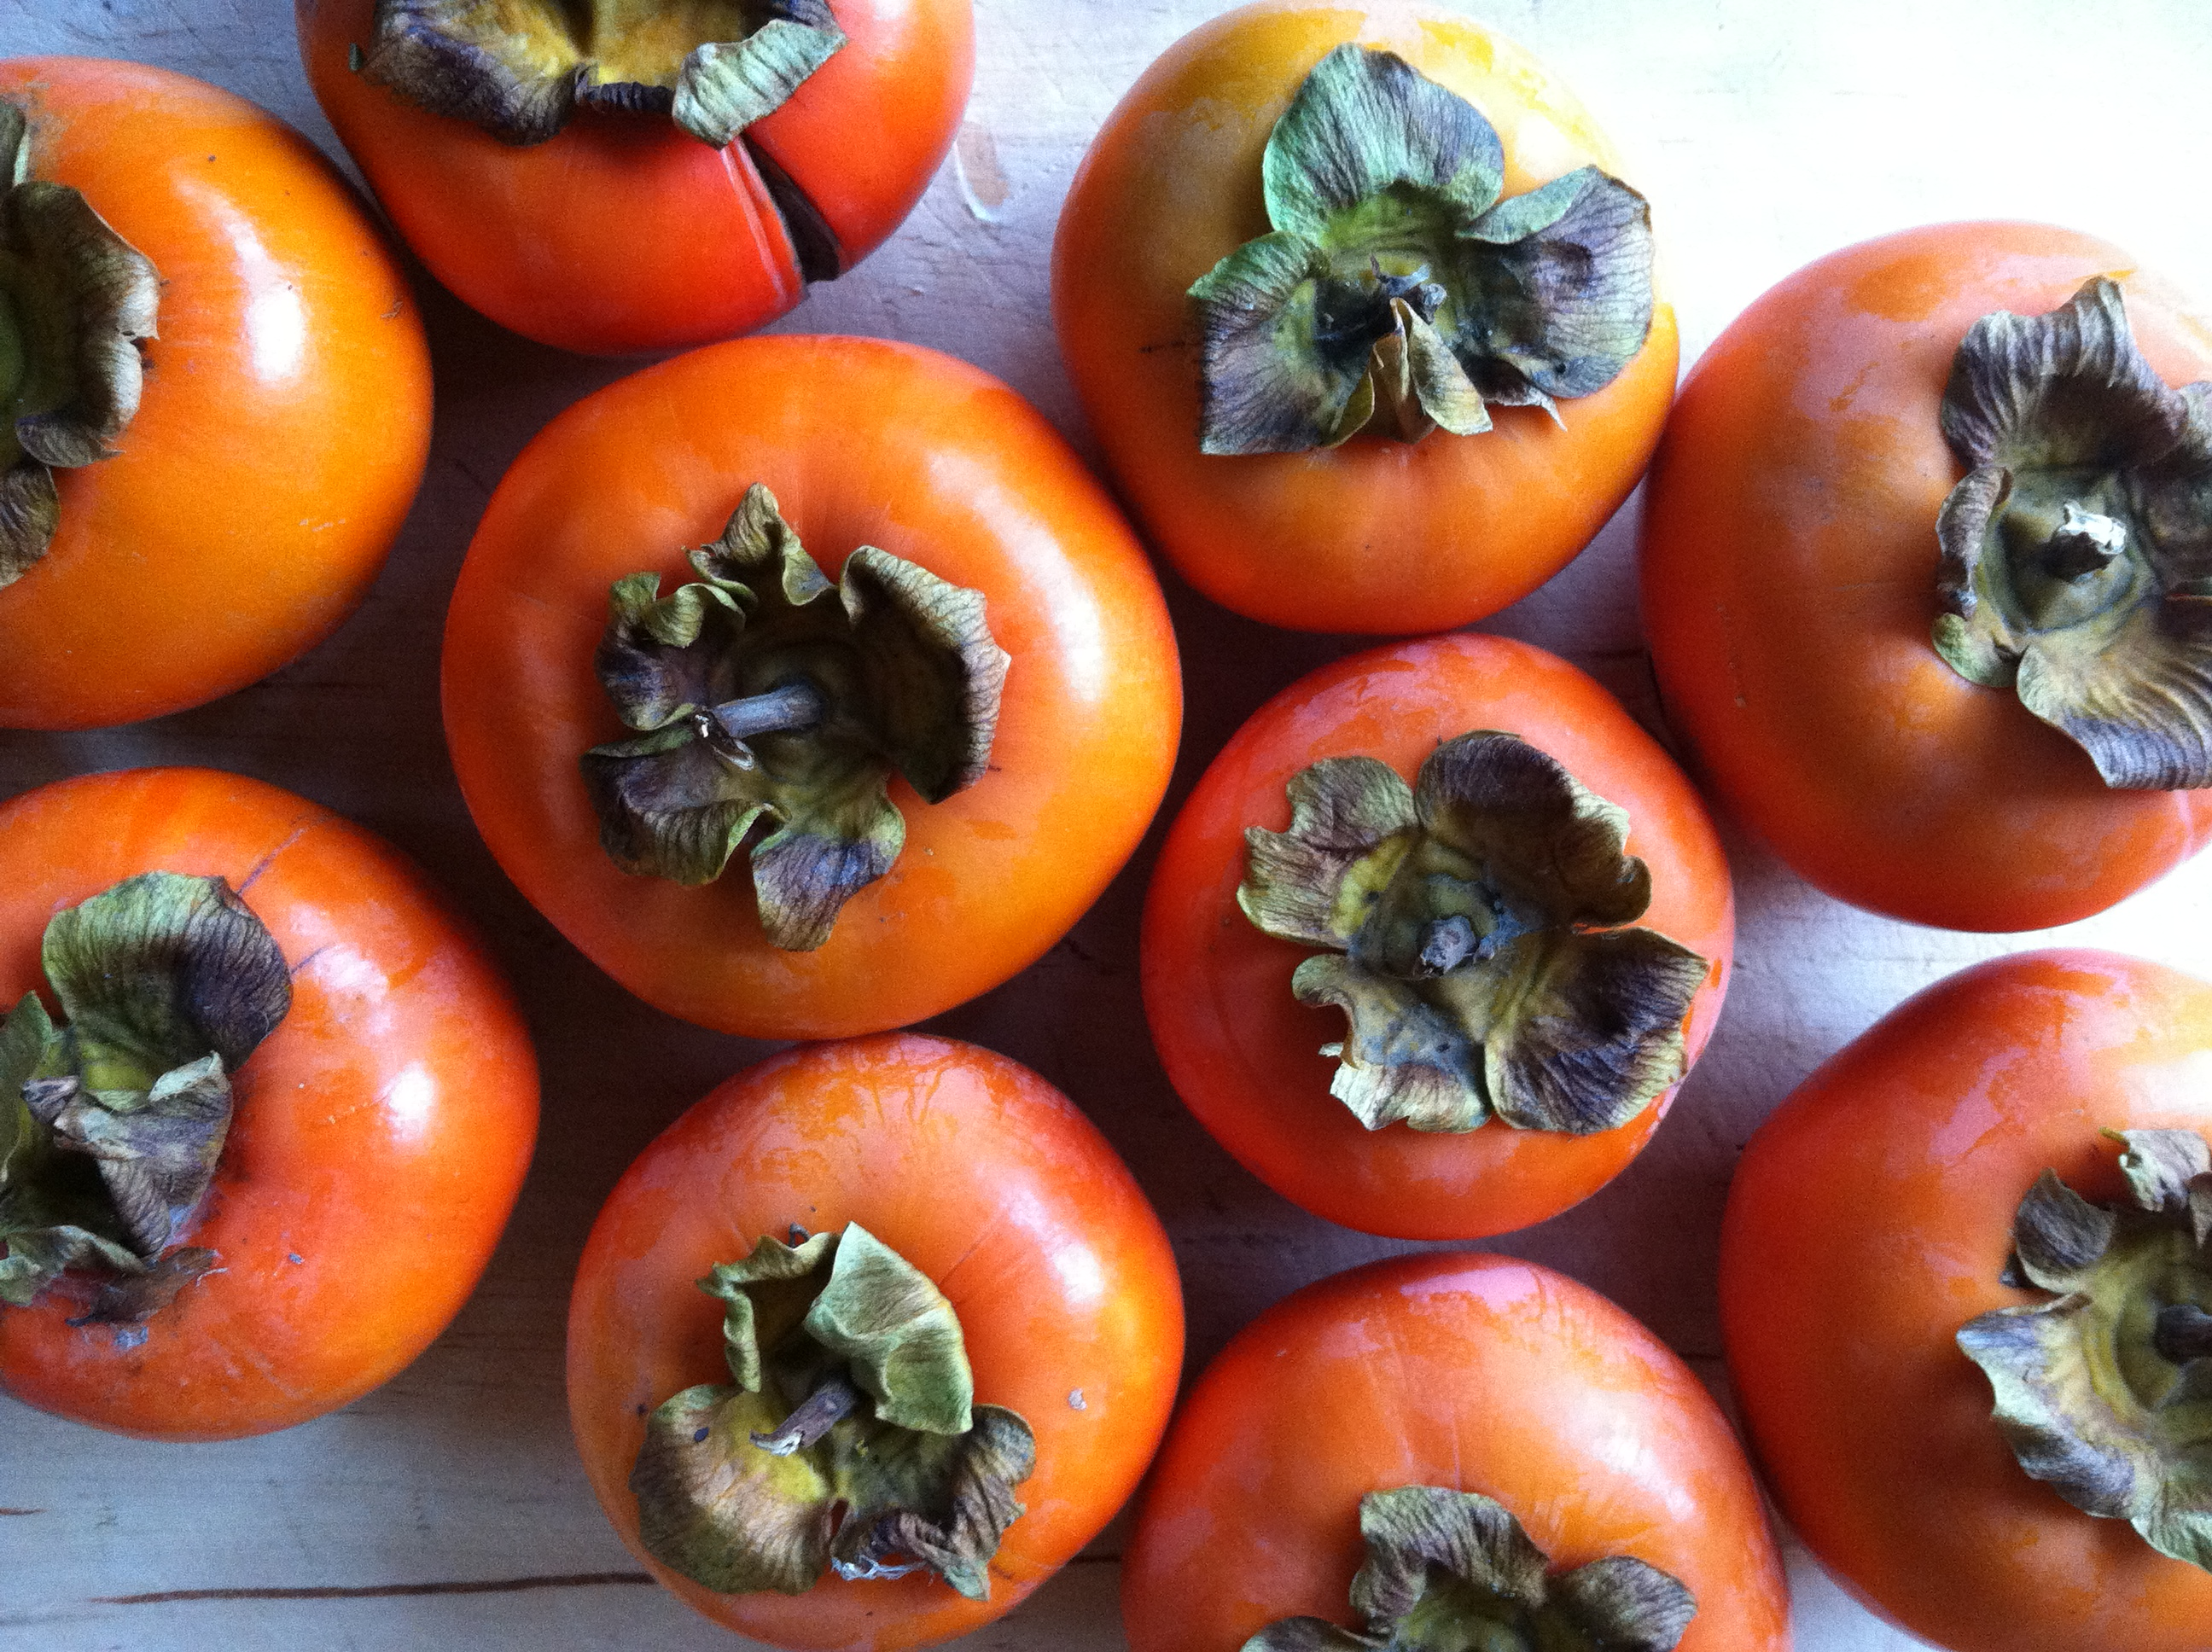 pick Fuyu persimmons from Fuyu Persimmons